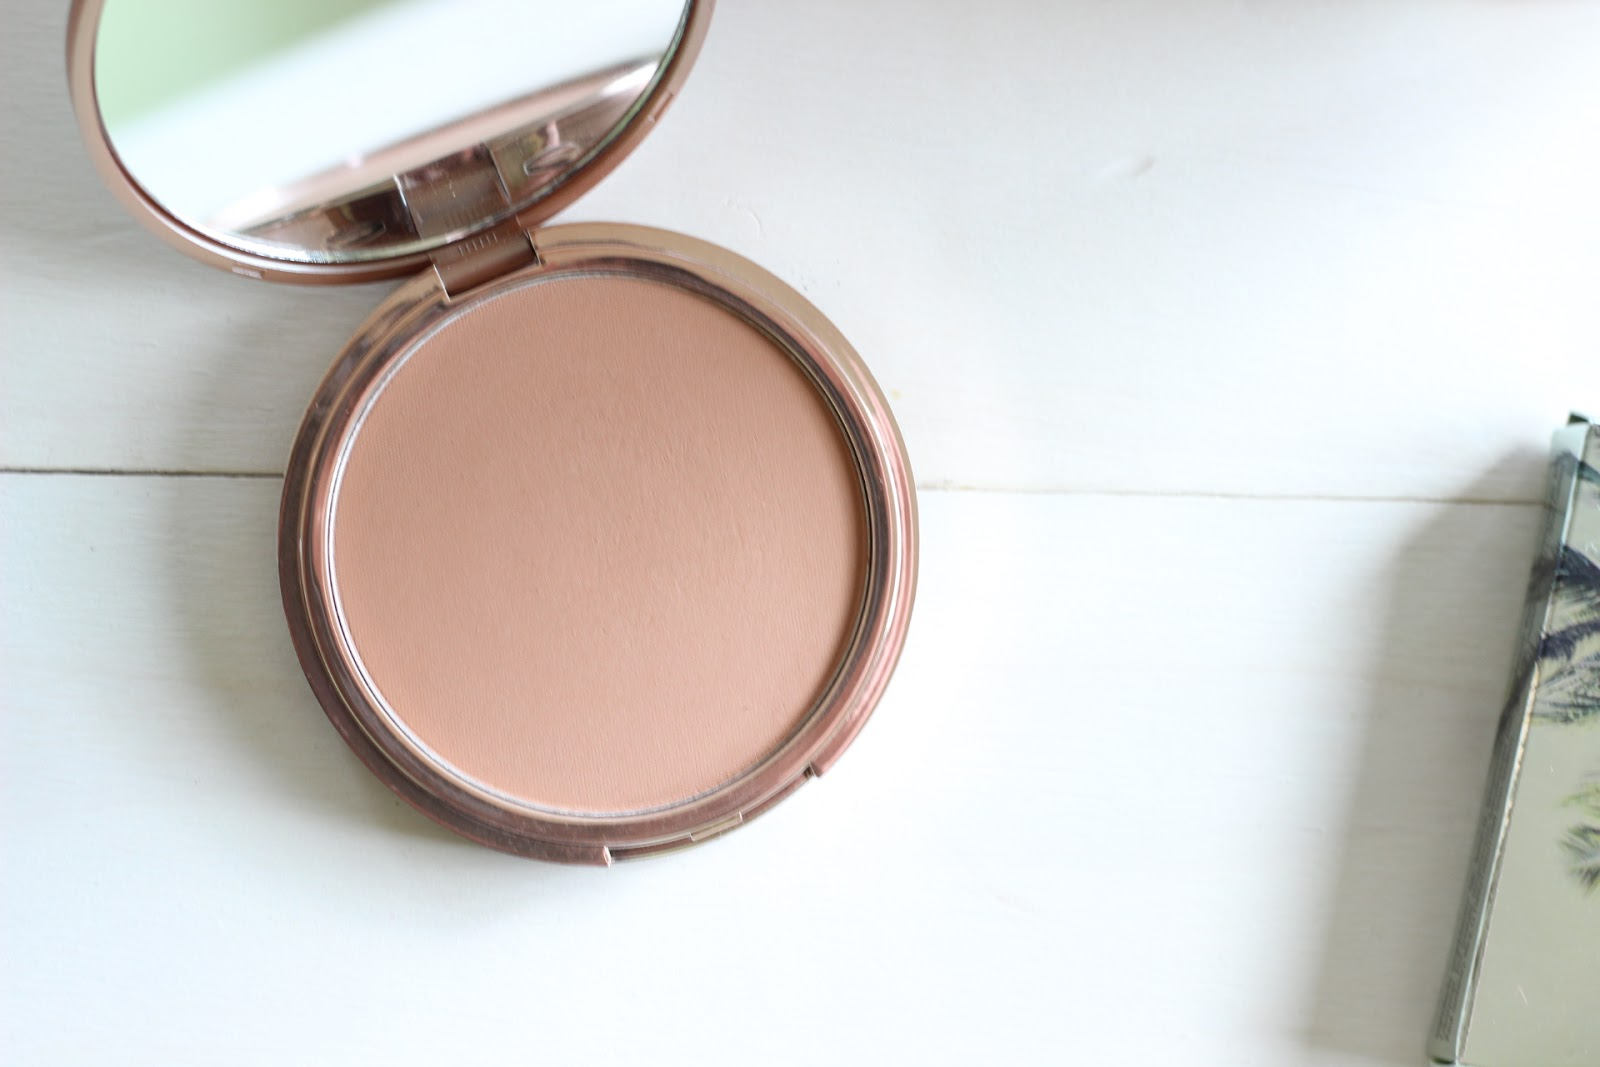 Urban Decay Beached Bronzer in Sunkissed